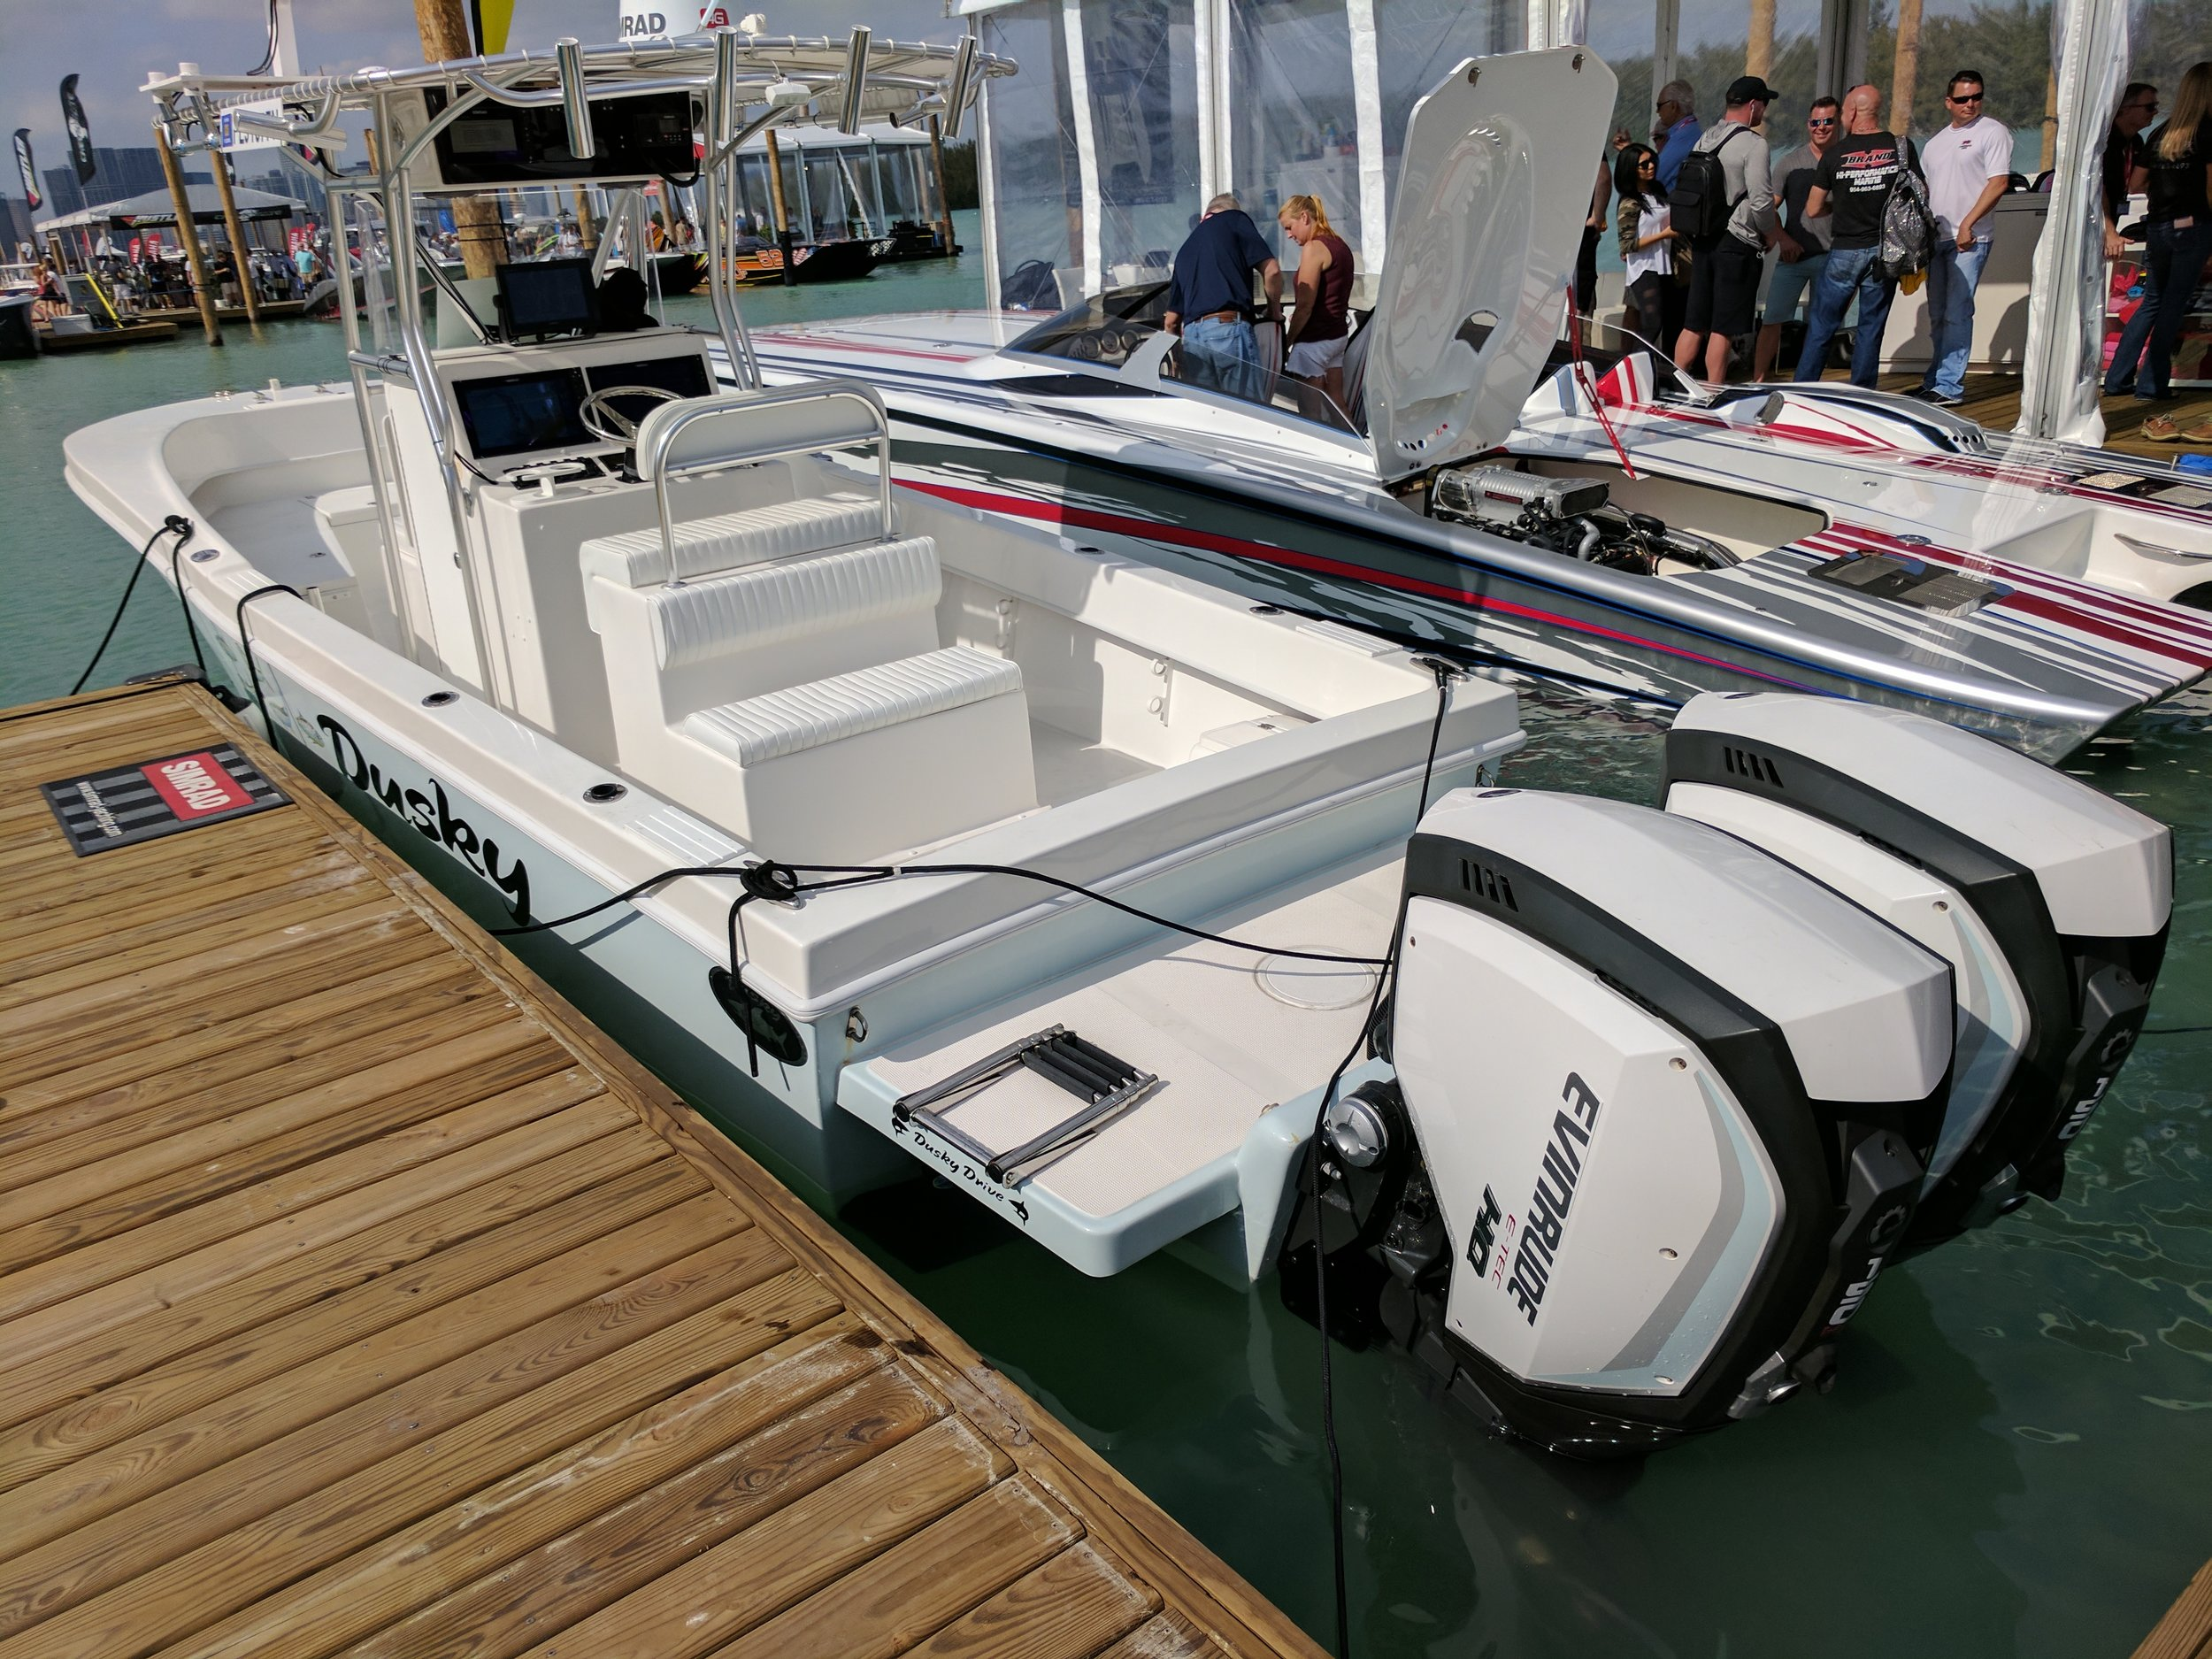 With the Evinrude G2 clean rigging, you get a very uncluttered transom and utility.